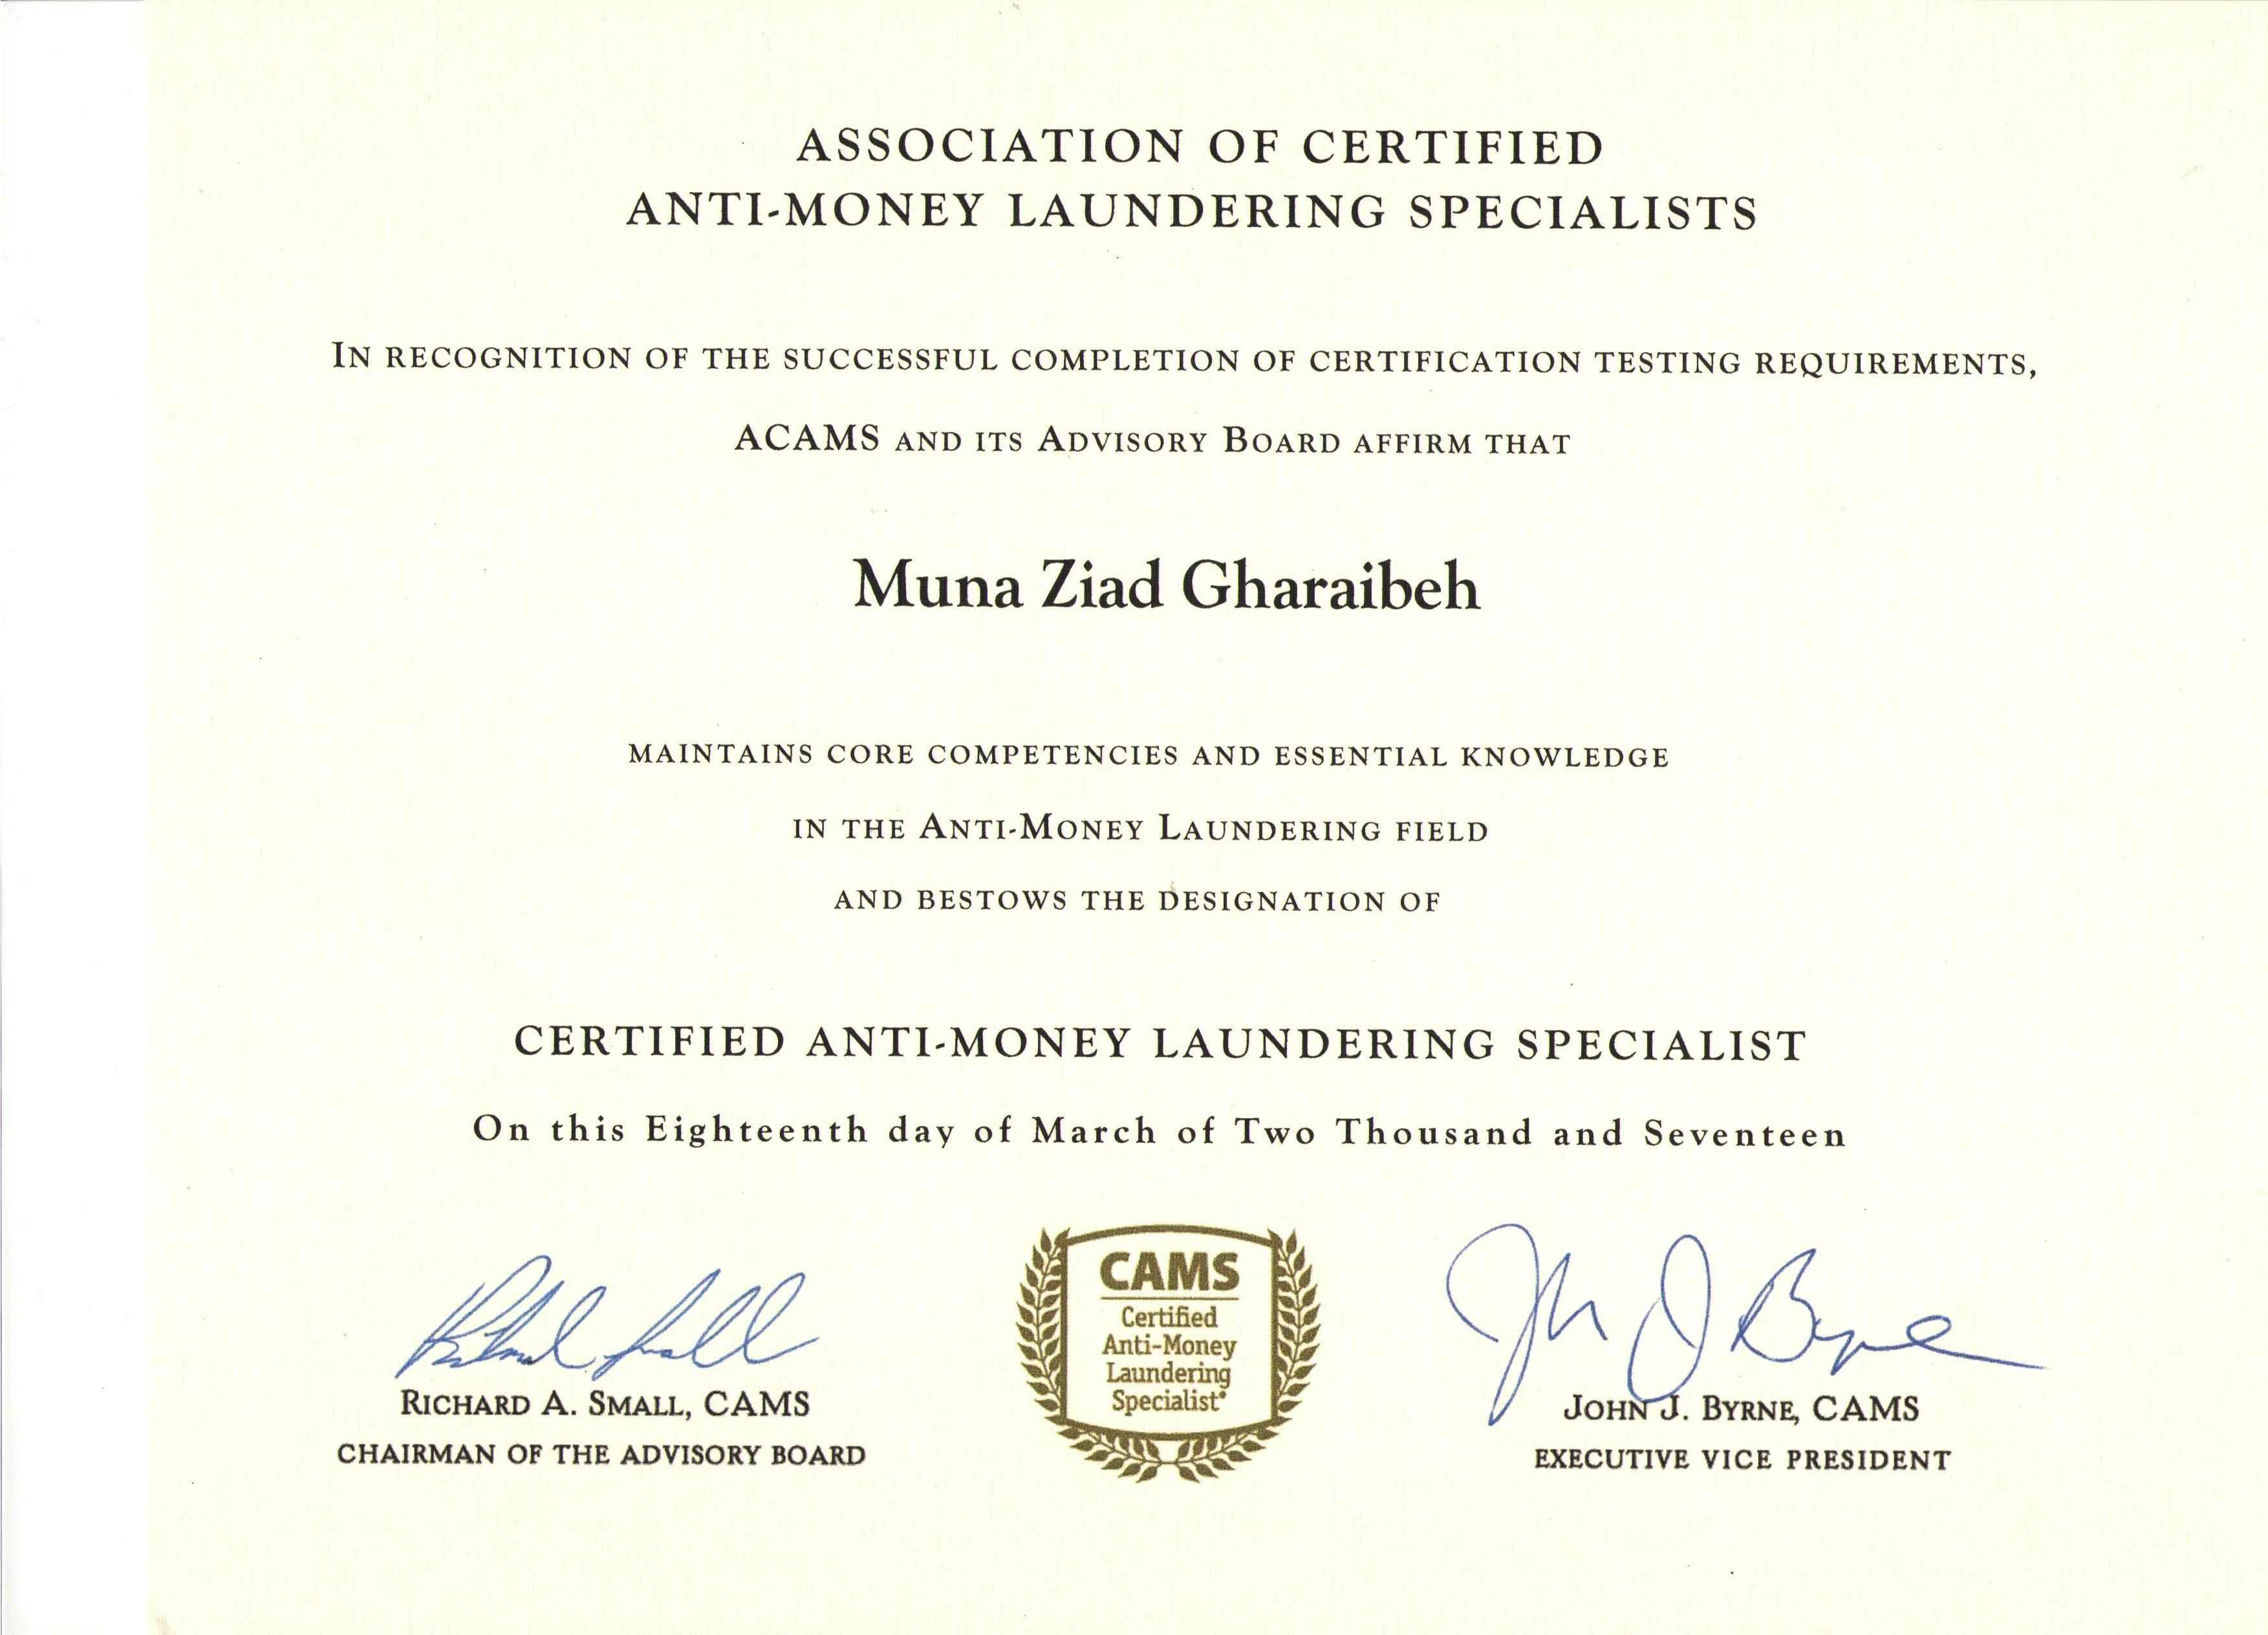 Muna ziad bader al deen gharaibeh bayt certified anti money laundering specialist cams certificate 1betcityfo Choice Image